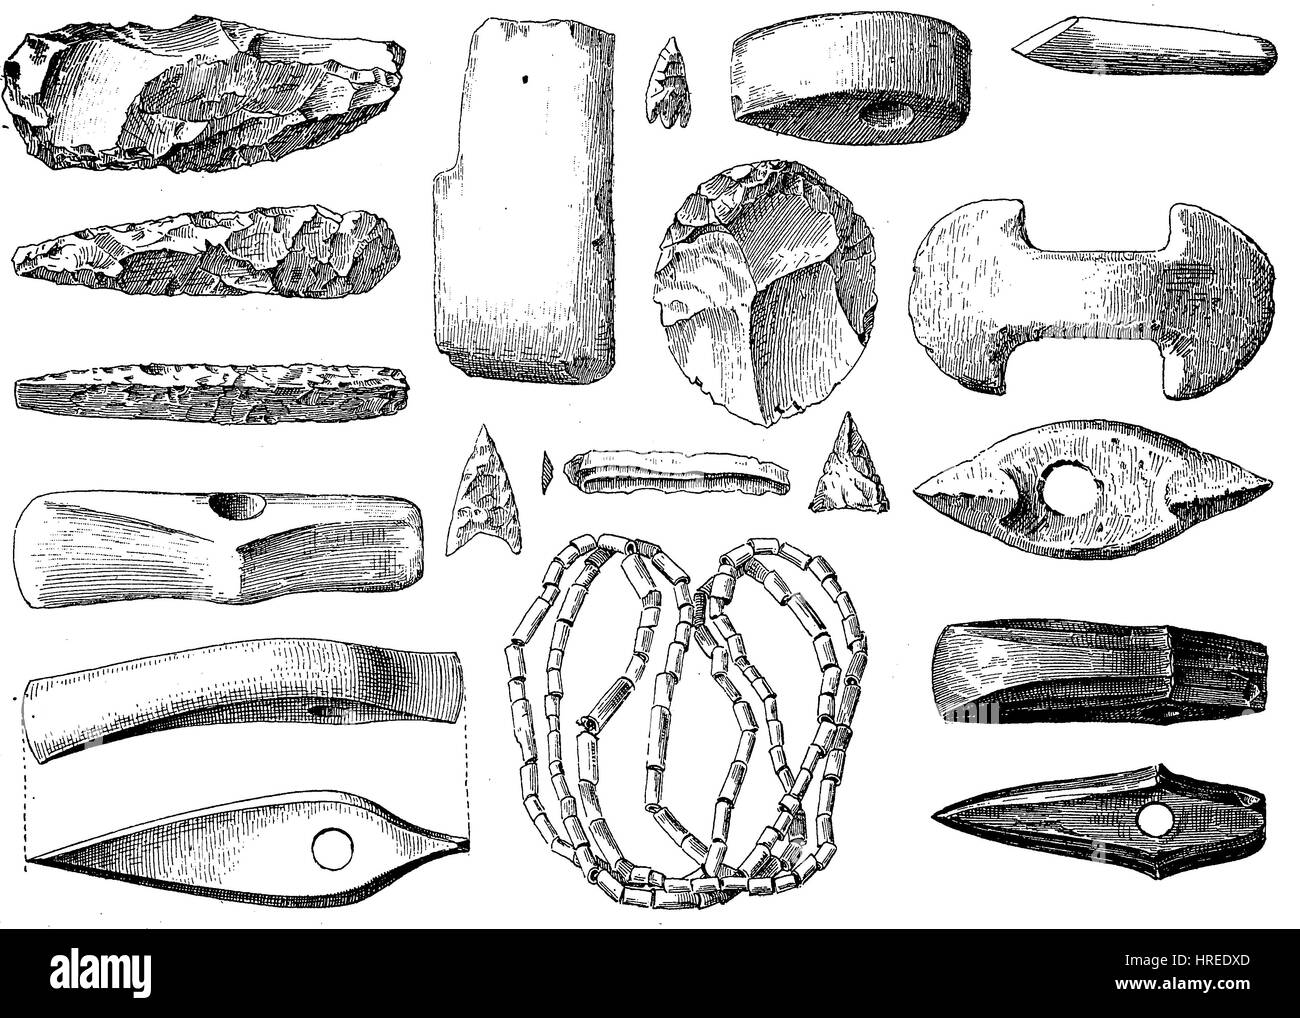 Weapons, jewelry and utensils from the Stone Age, Germany, reproduction of an woodcut from the 19th century, 1885 - Stock Image